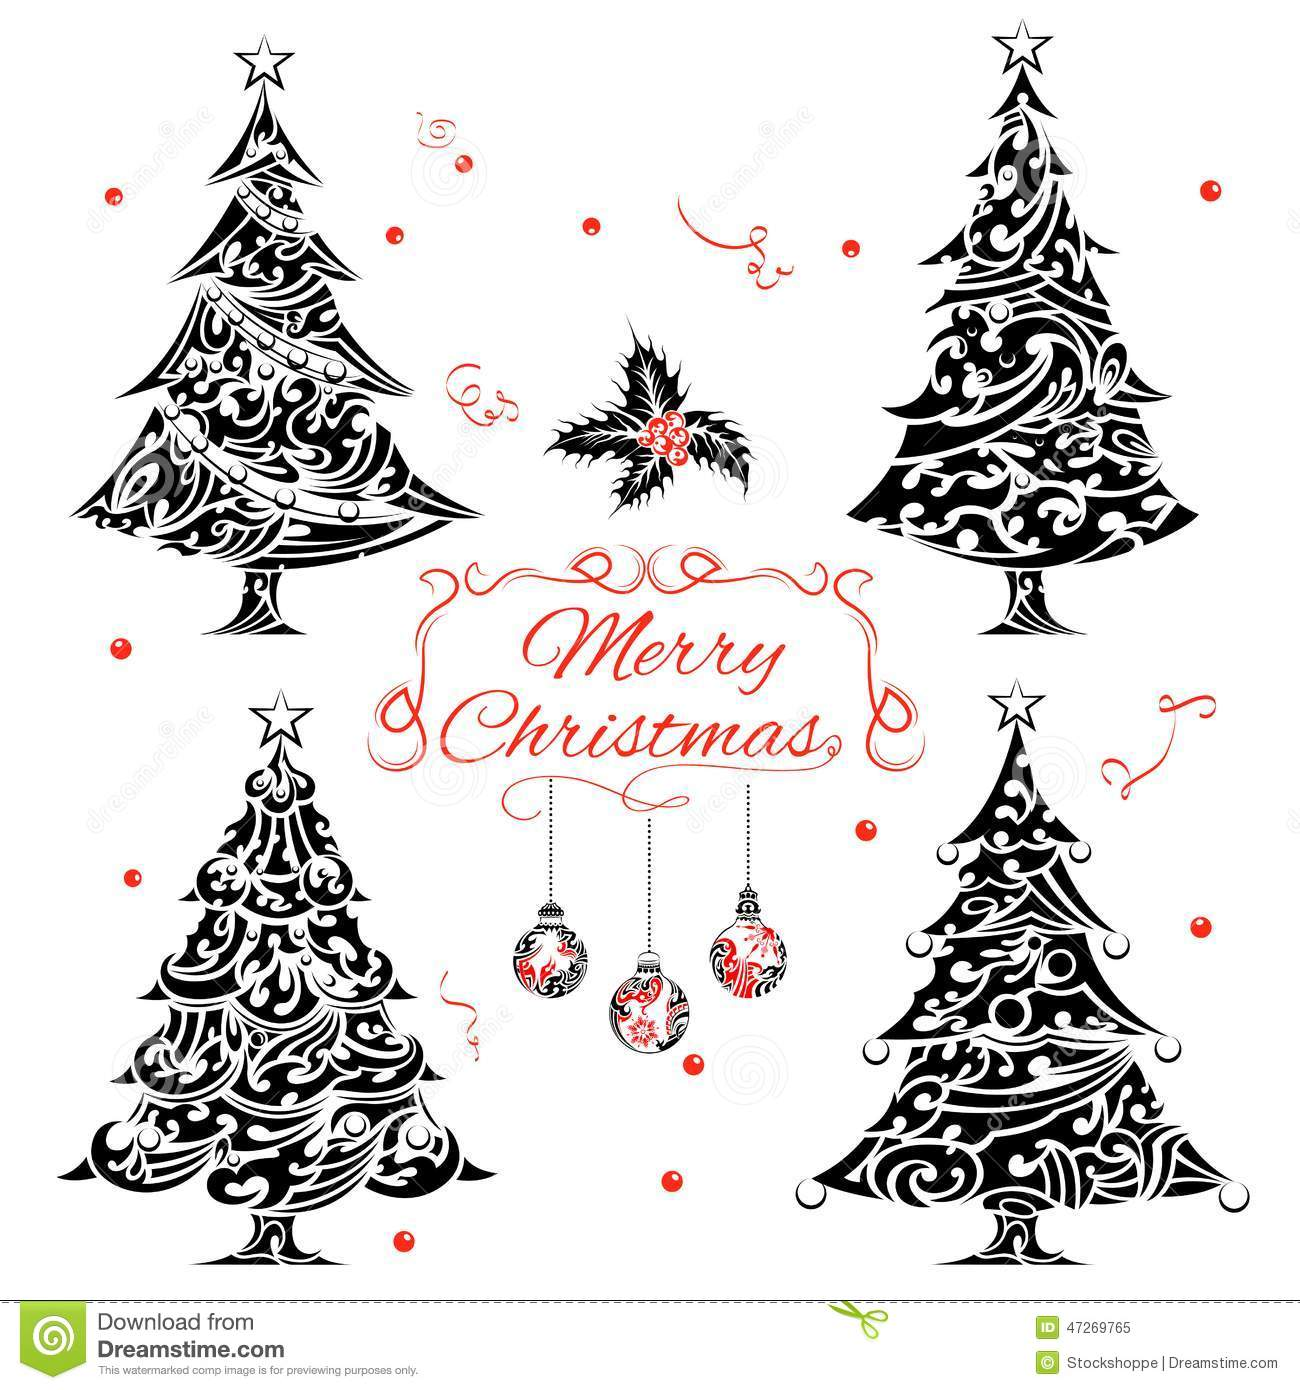 Christmas Tree Tattoo Designs.Christmas Tree In Tattoo Style Stock Vector Illustration